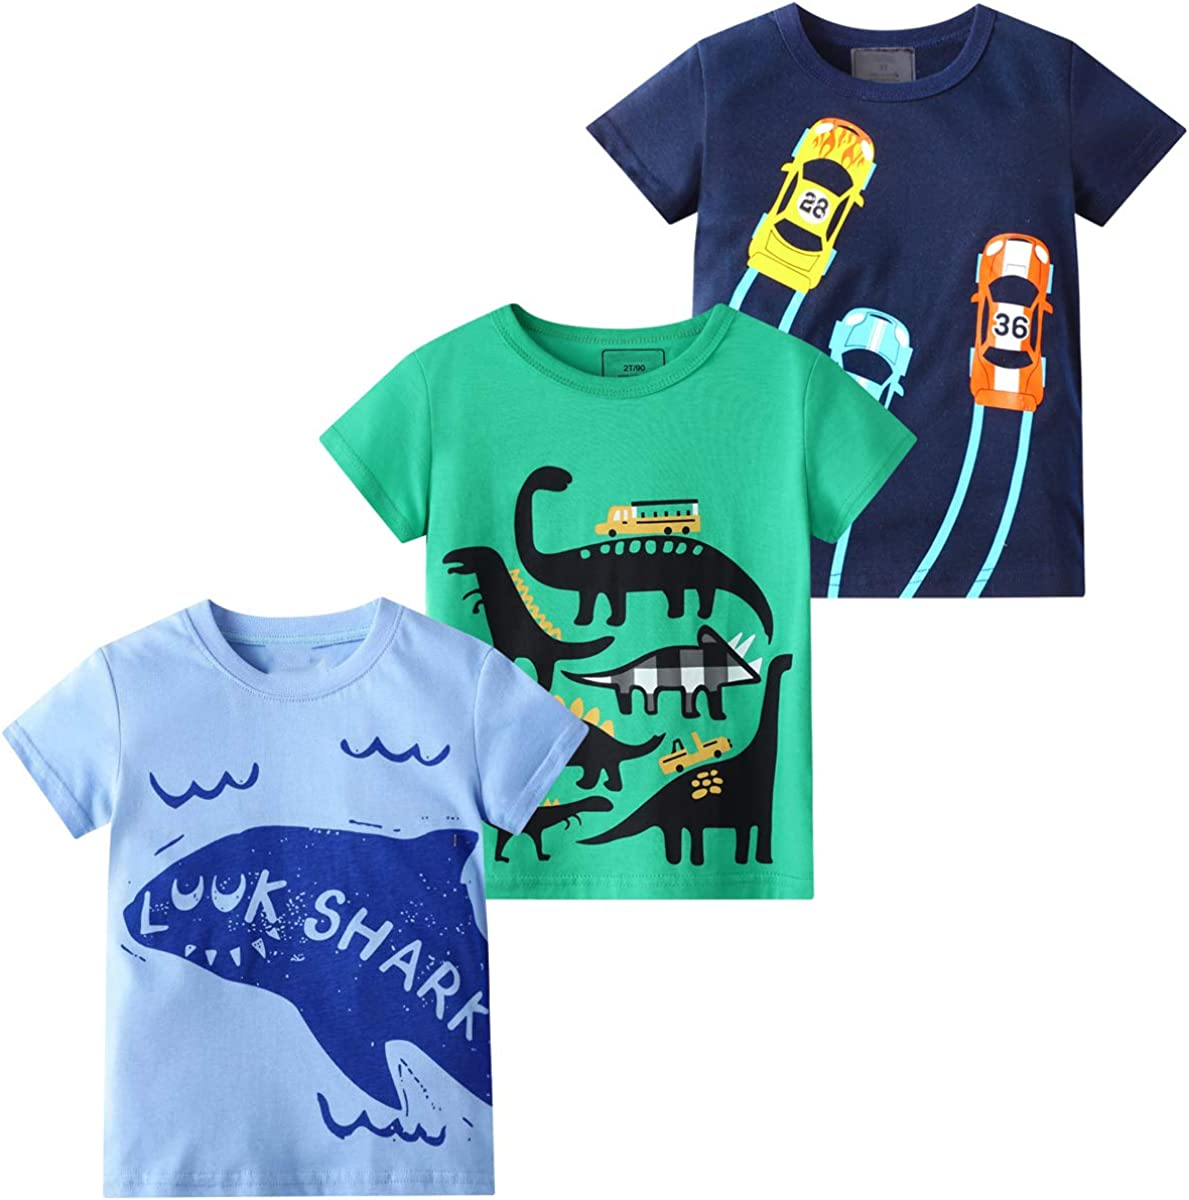 DEEKEY Toddler Little Boys 3-Pack Dinosaur Short Sleeve Crewneck T-Shirts Top Tee Size for 2-7 Years